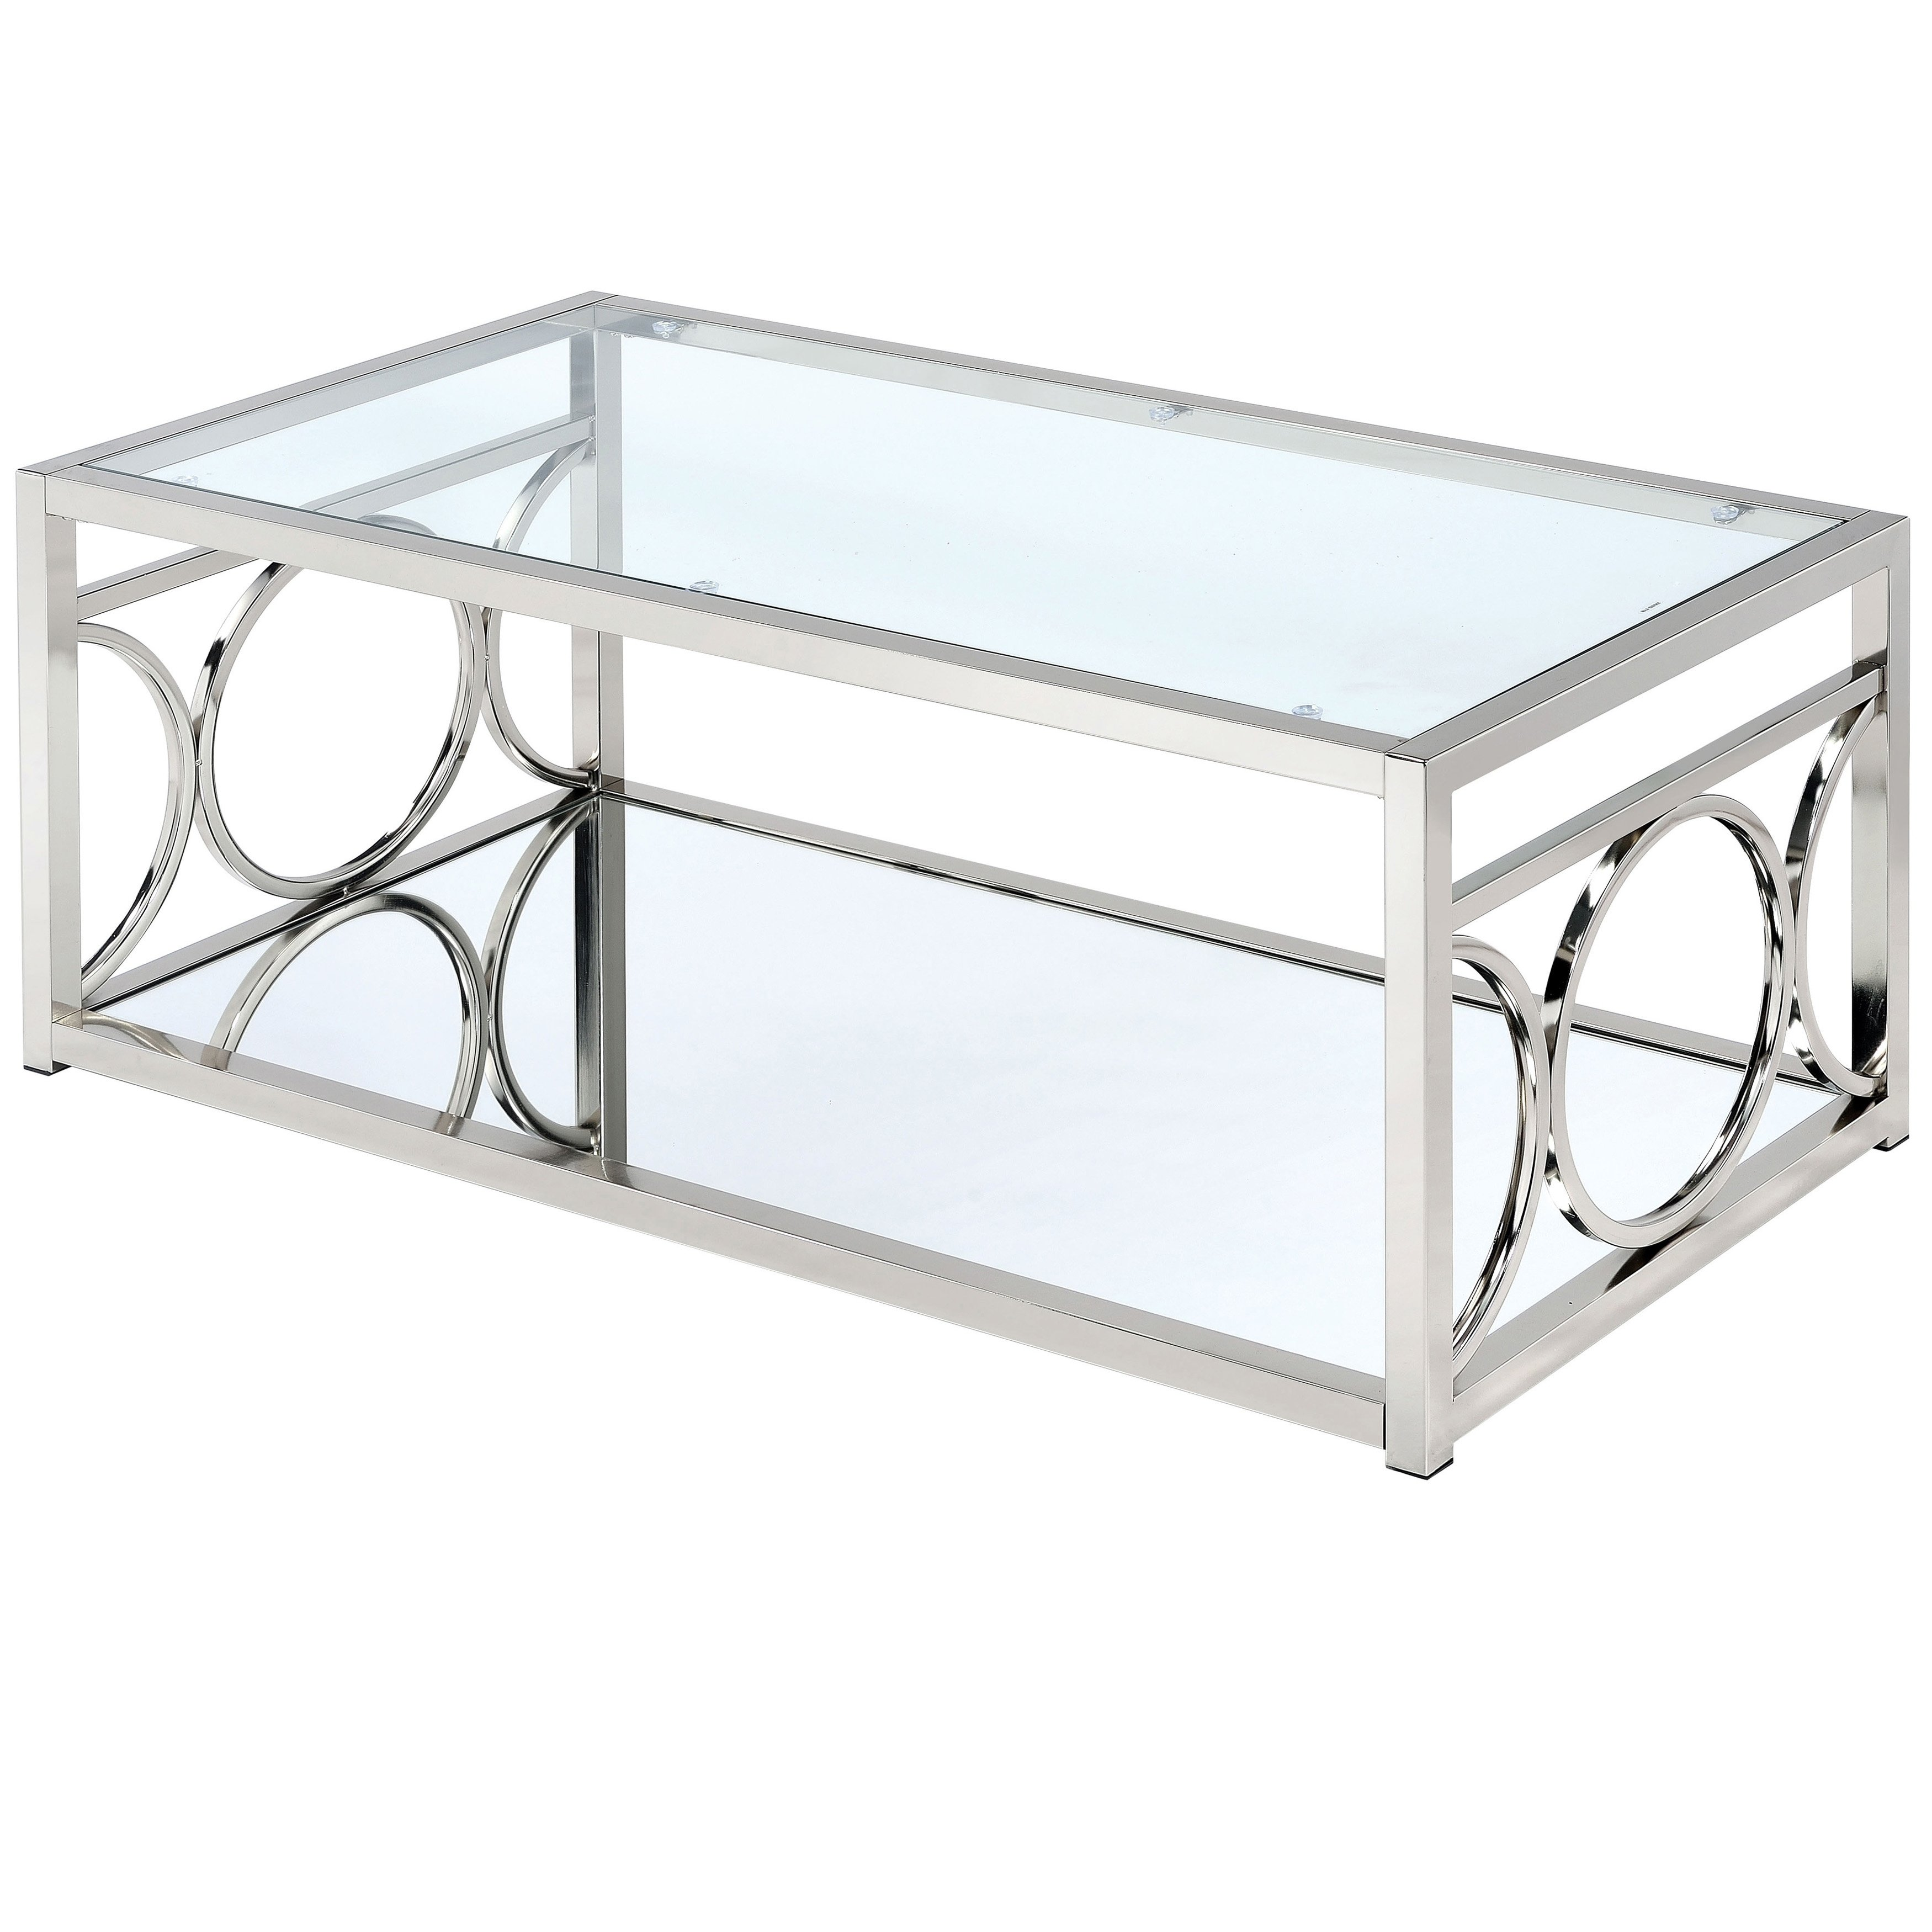 furniture america mishie contemporary piece glass top accent table set tables free shipping today trestle leg dining oval entry ashley jeromes decor pier one coupons pendant light